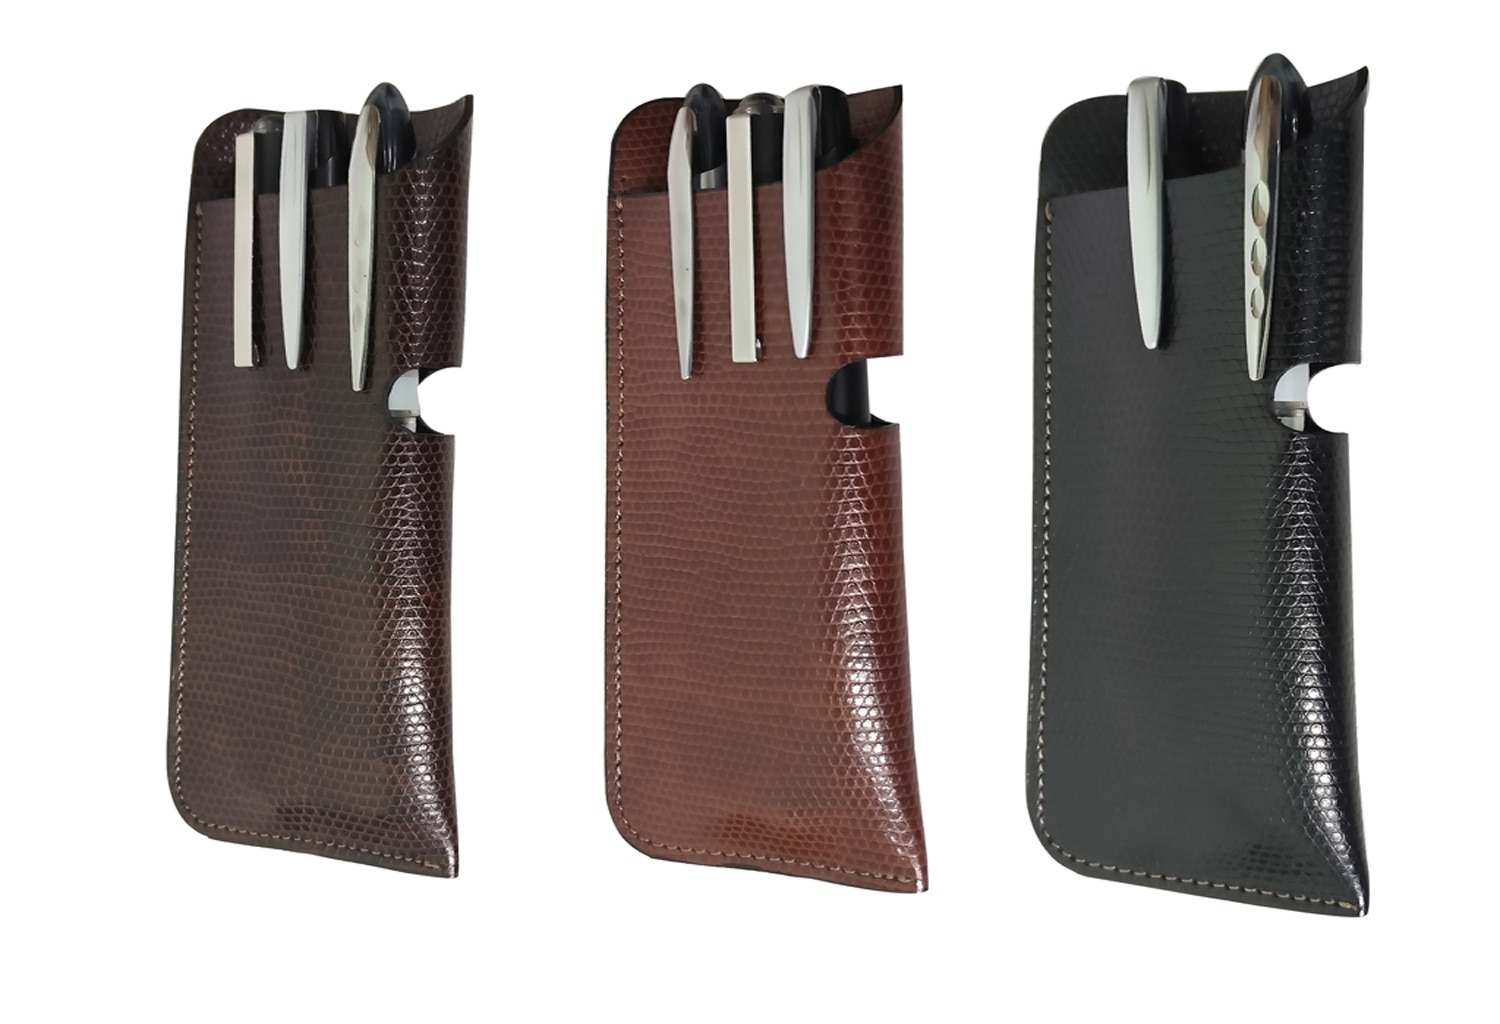 Essart Pen Holder-Combo PNC-04-Brown.Tan, Black   Essart Pen Holder-Combo PNC-04-Brown.Tan, Black Store in Delhi-Ncr.   Essart PU Leather pen case holders (3 in one). BuyNow http://retailwal.net/products/679-essart-pen-holder-combo-pnc-04-browntanblack.aspx#.WI84R1V97Z4